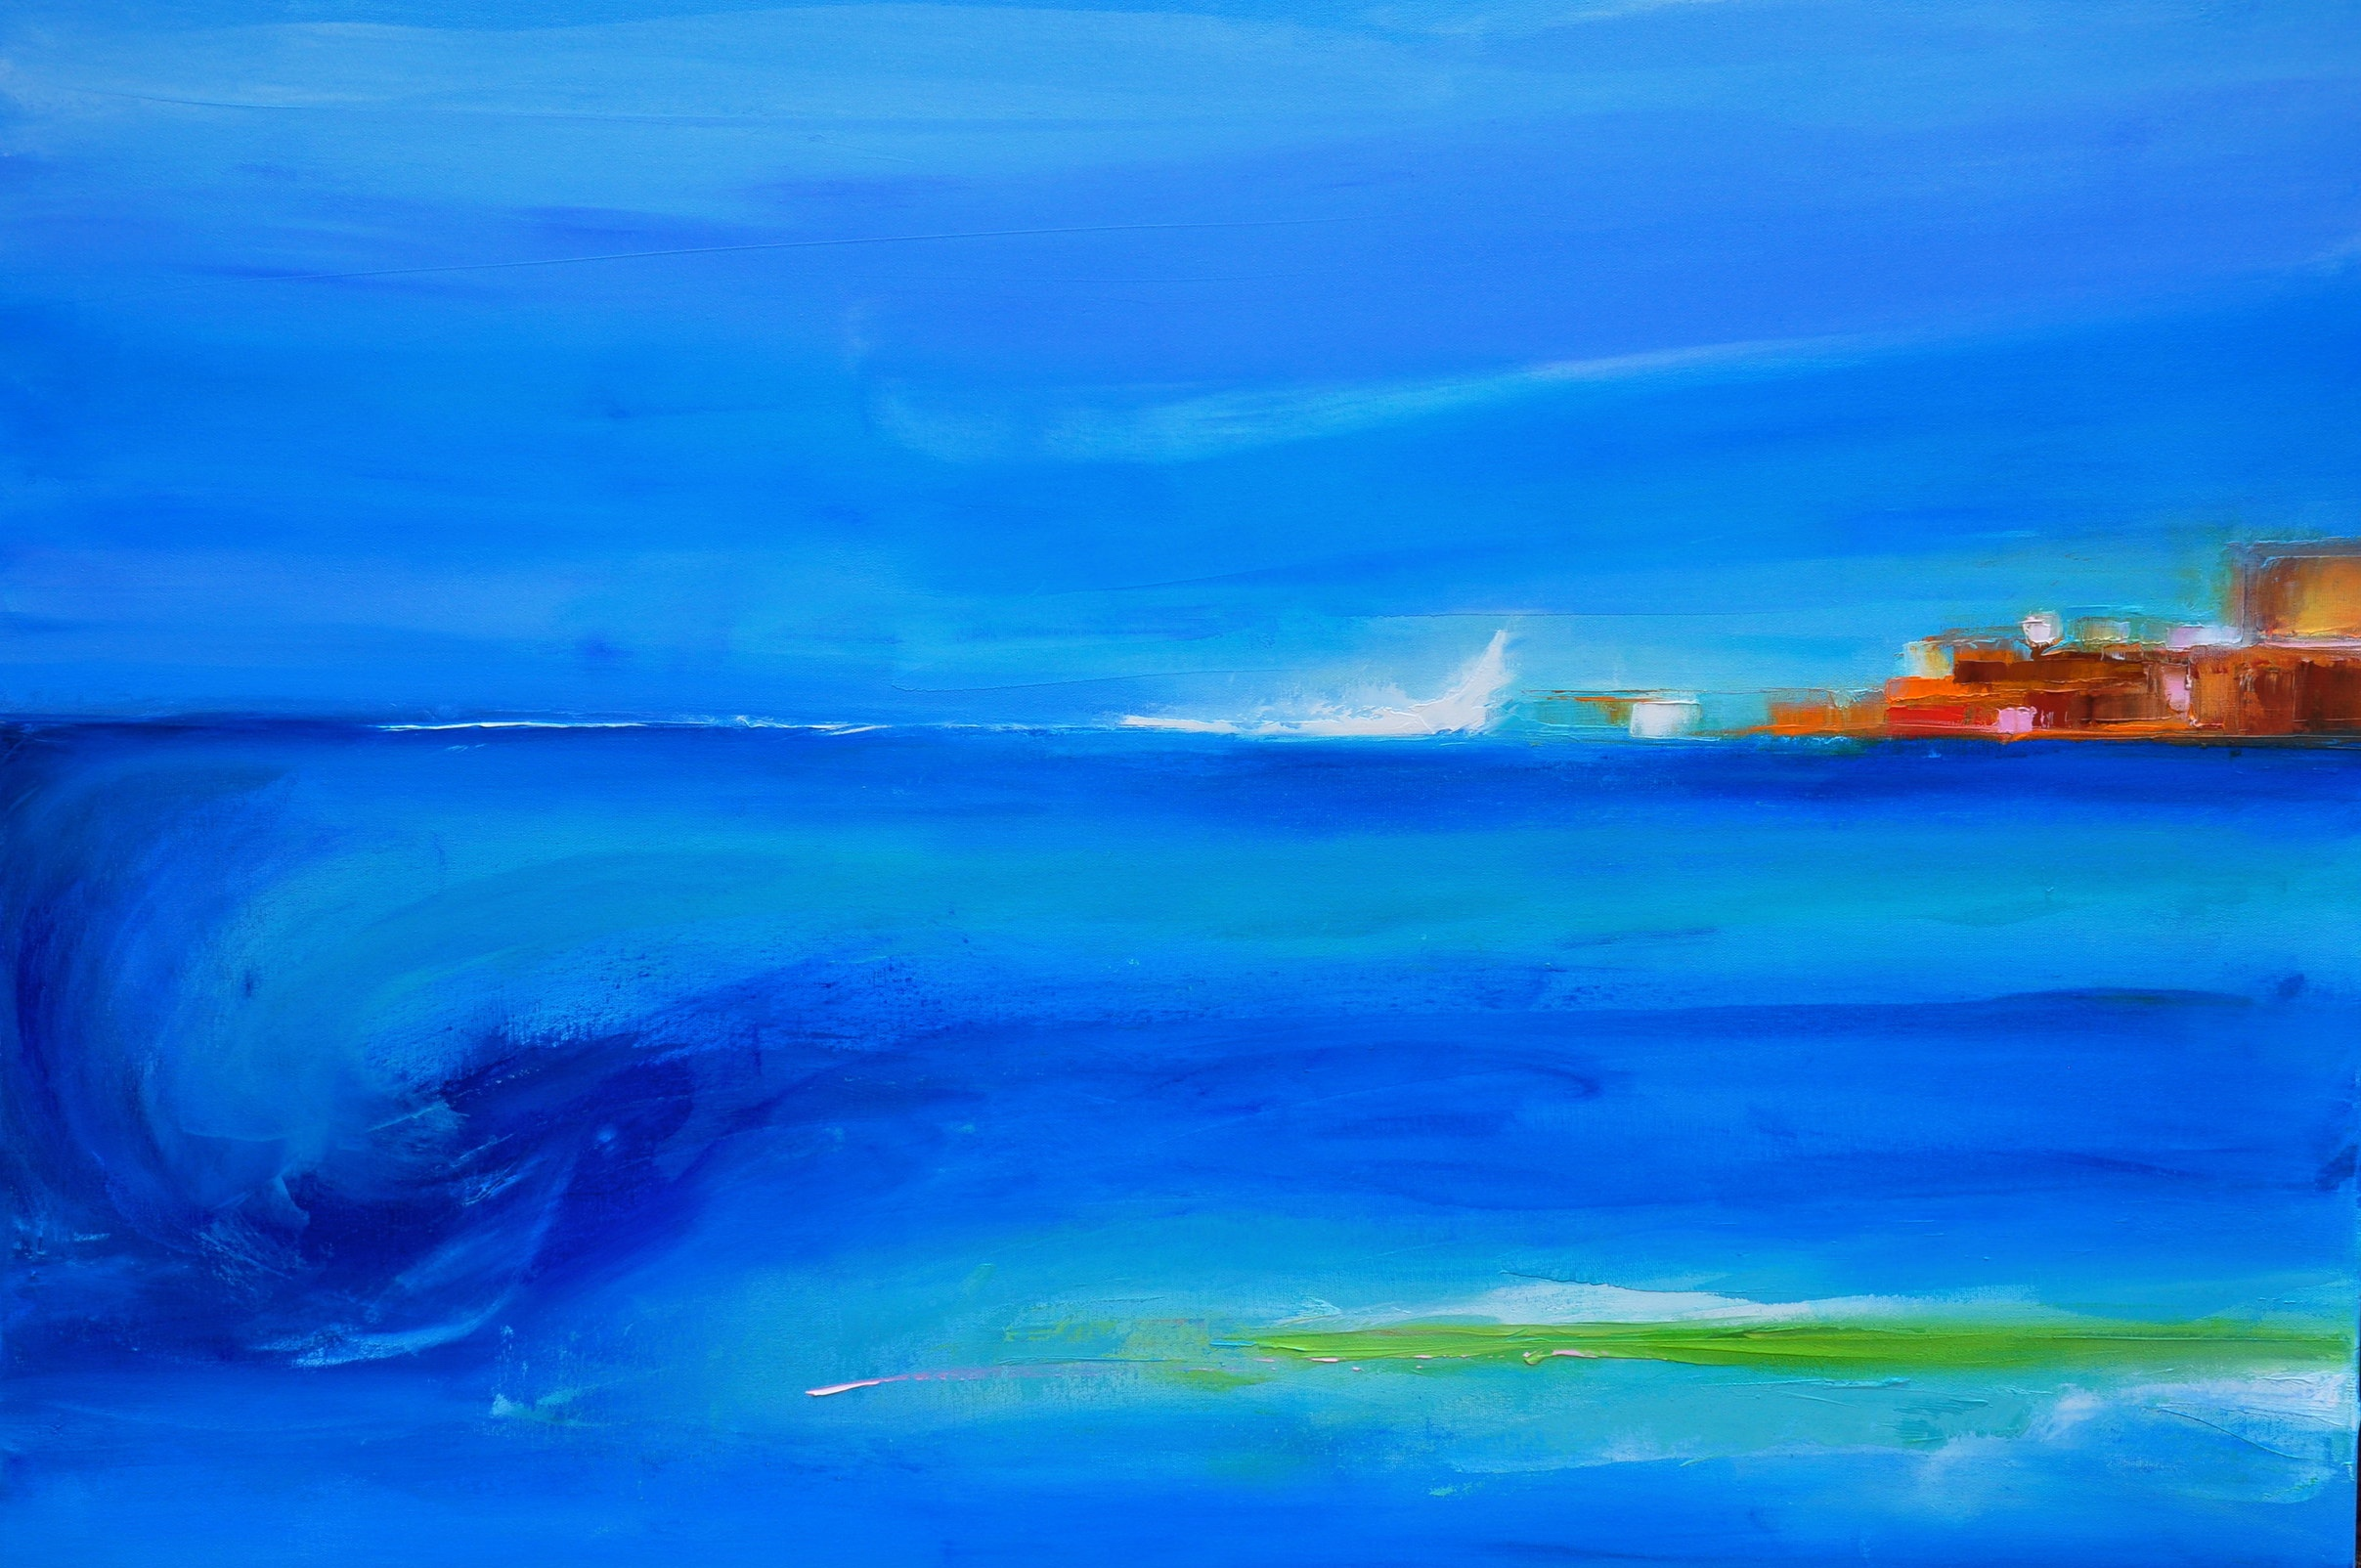 La Mer, oil on canvas, 30 x 40 inches, U$ 1900.-